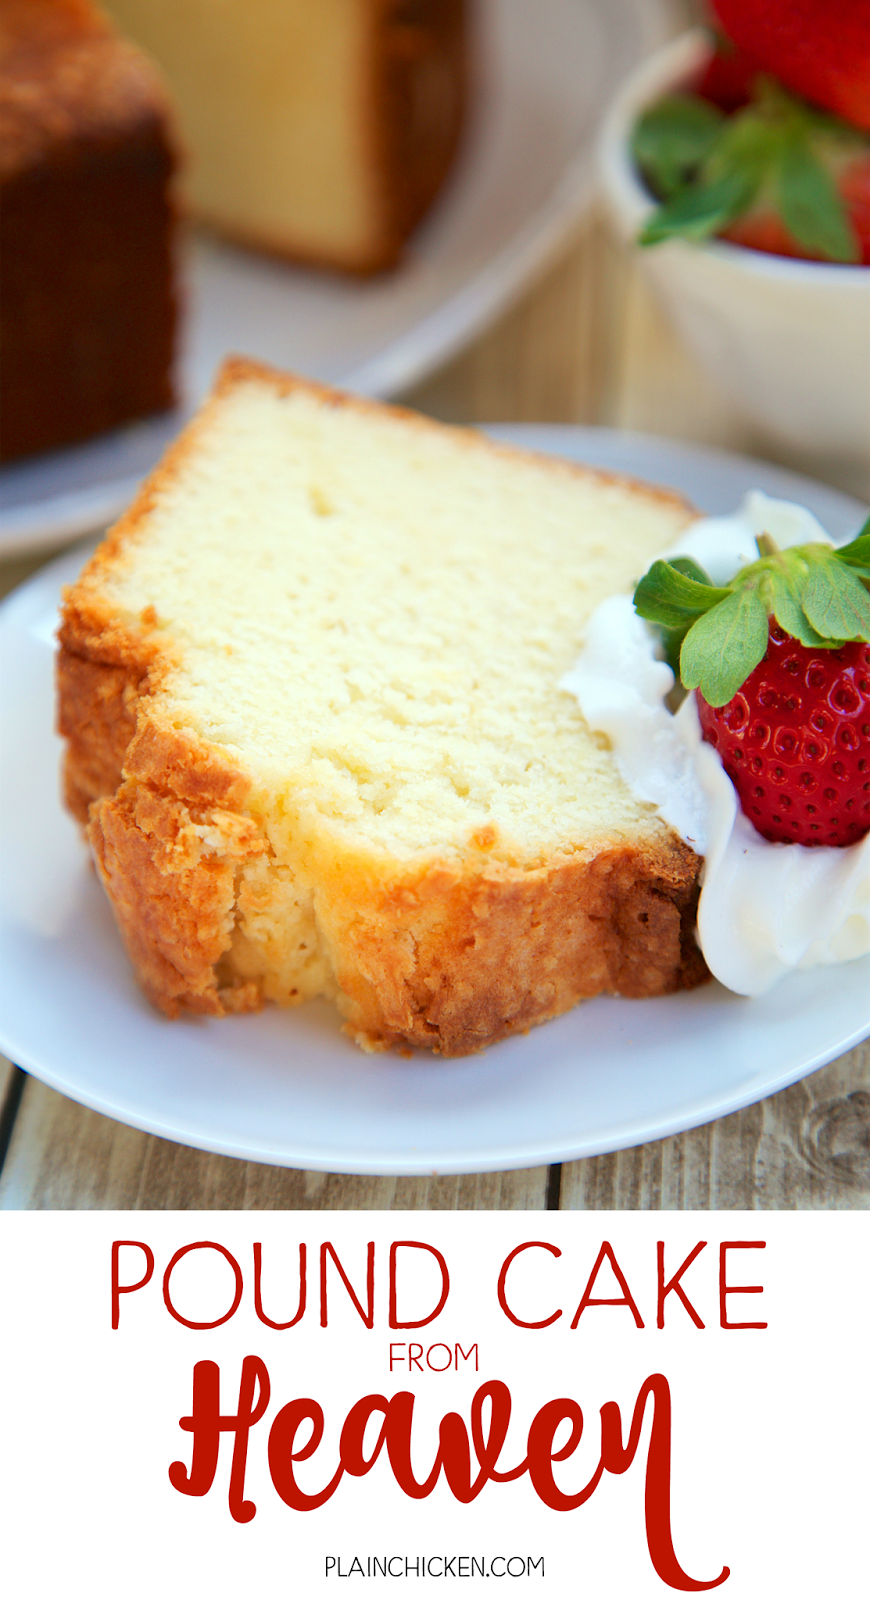 Pound Cake From Heaven Delicious Southern Pound Cake Recipe Sweet Rich And Still